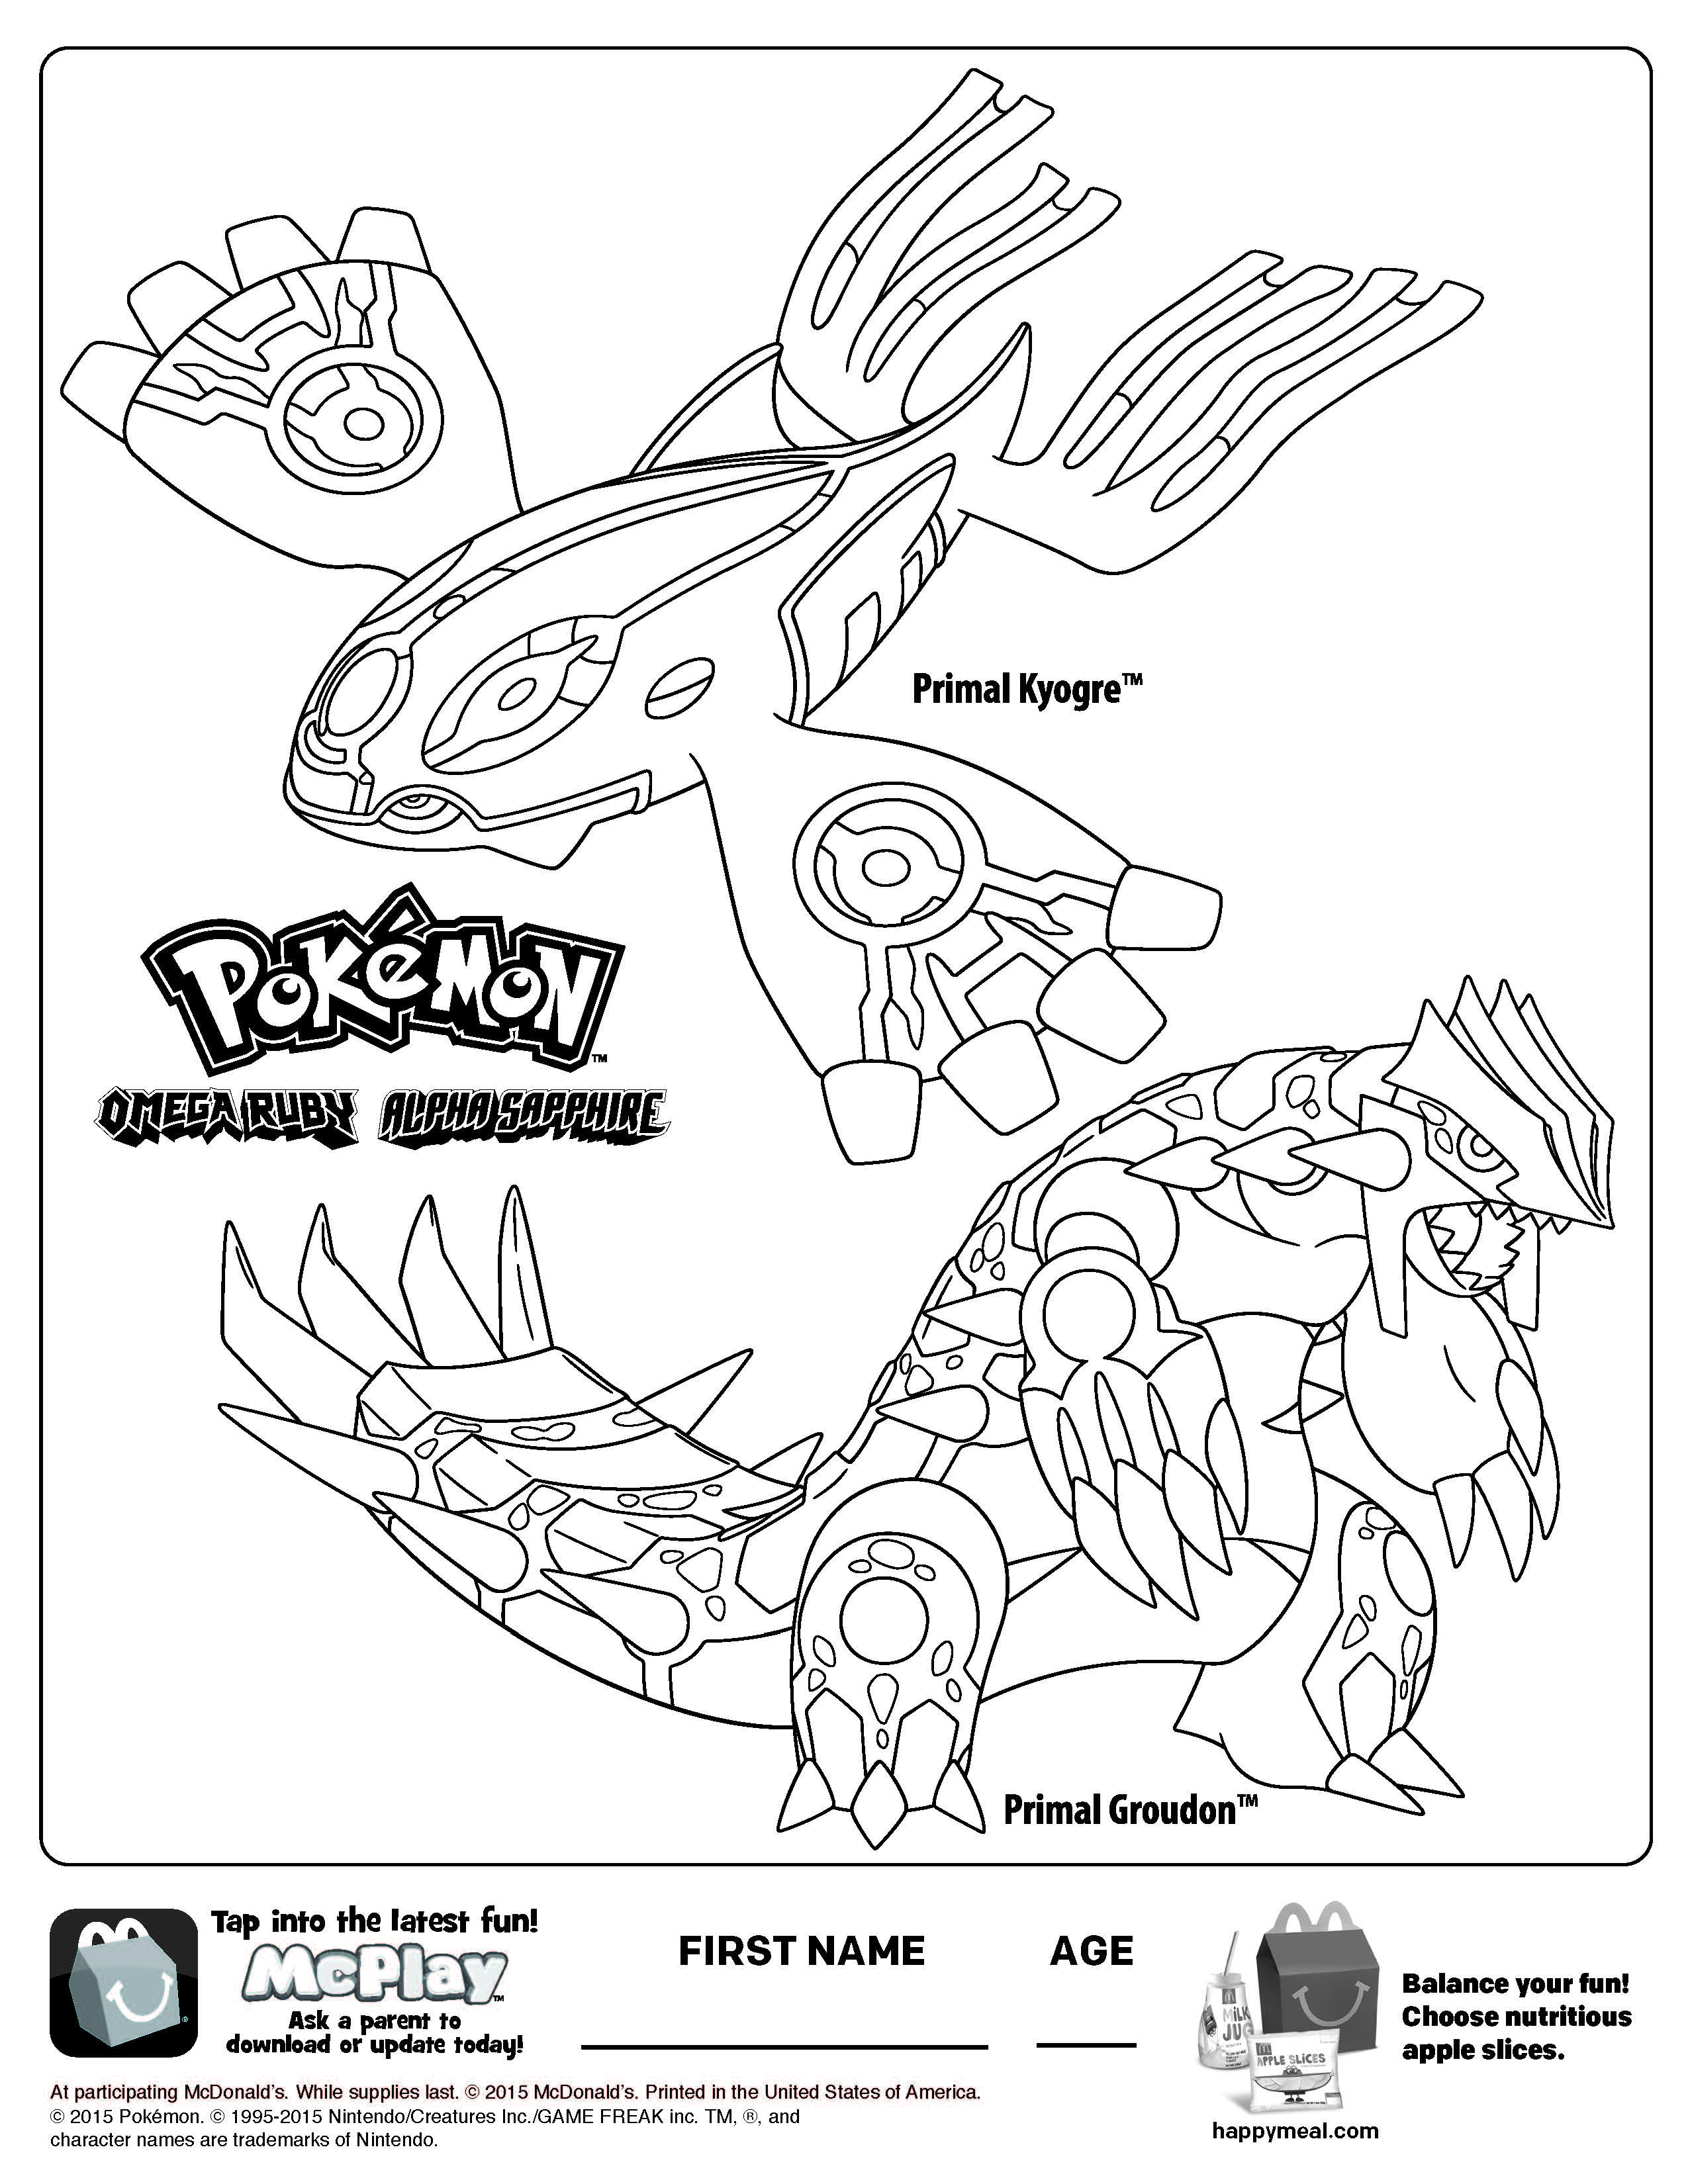 Uncategorized Kyogre Coloring Pages free mcdonalds happy meal pokemon printable coloring page page